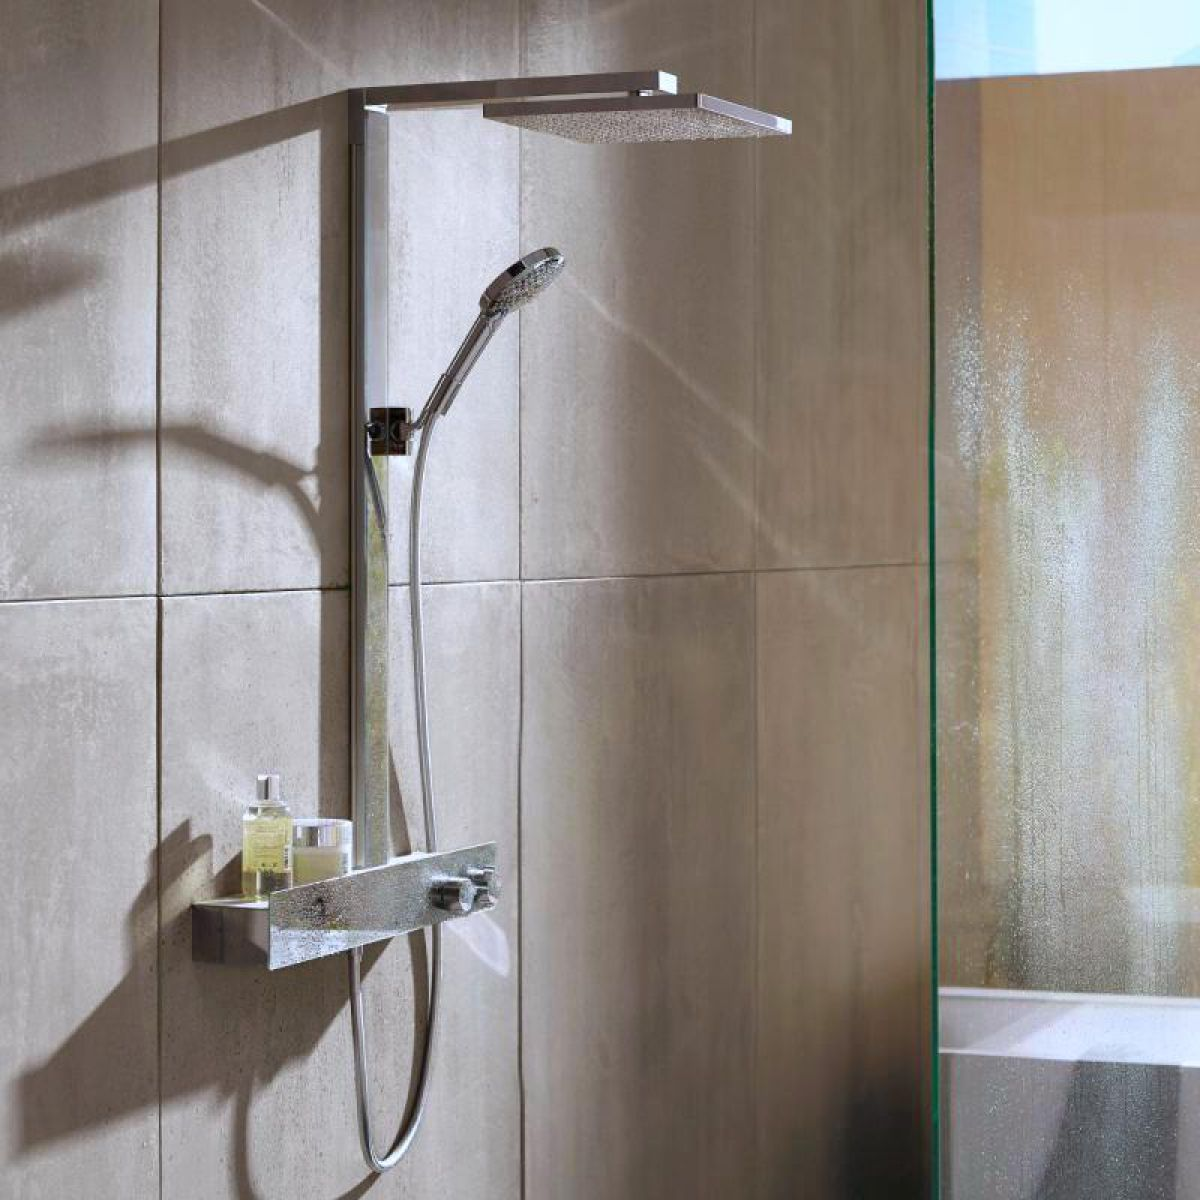 hansgrohe raindance e 300 1jet showerpipe with 600 shower tablet uk bathrooms. Black Bedroom Furniture Sets. Home Design Ideas